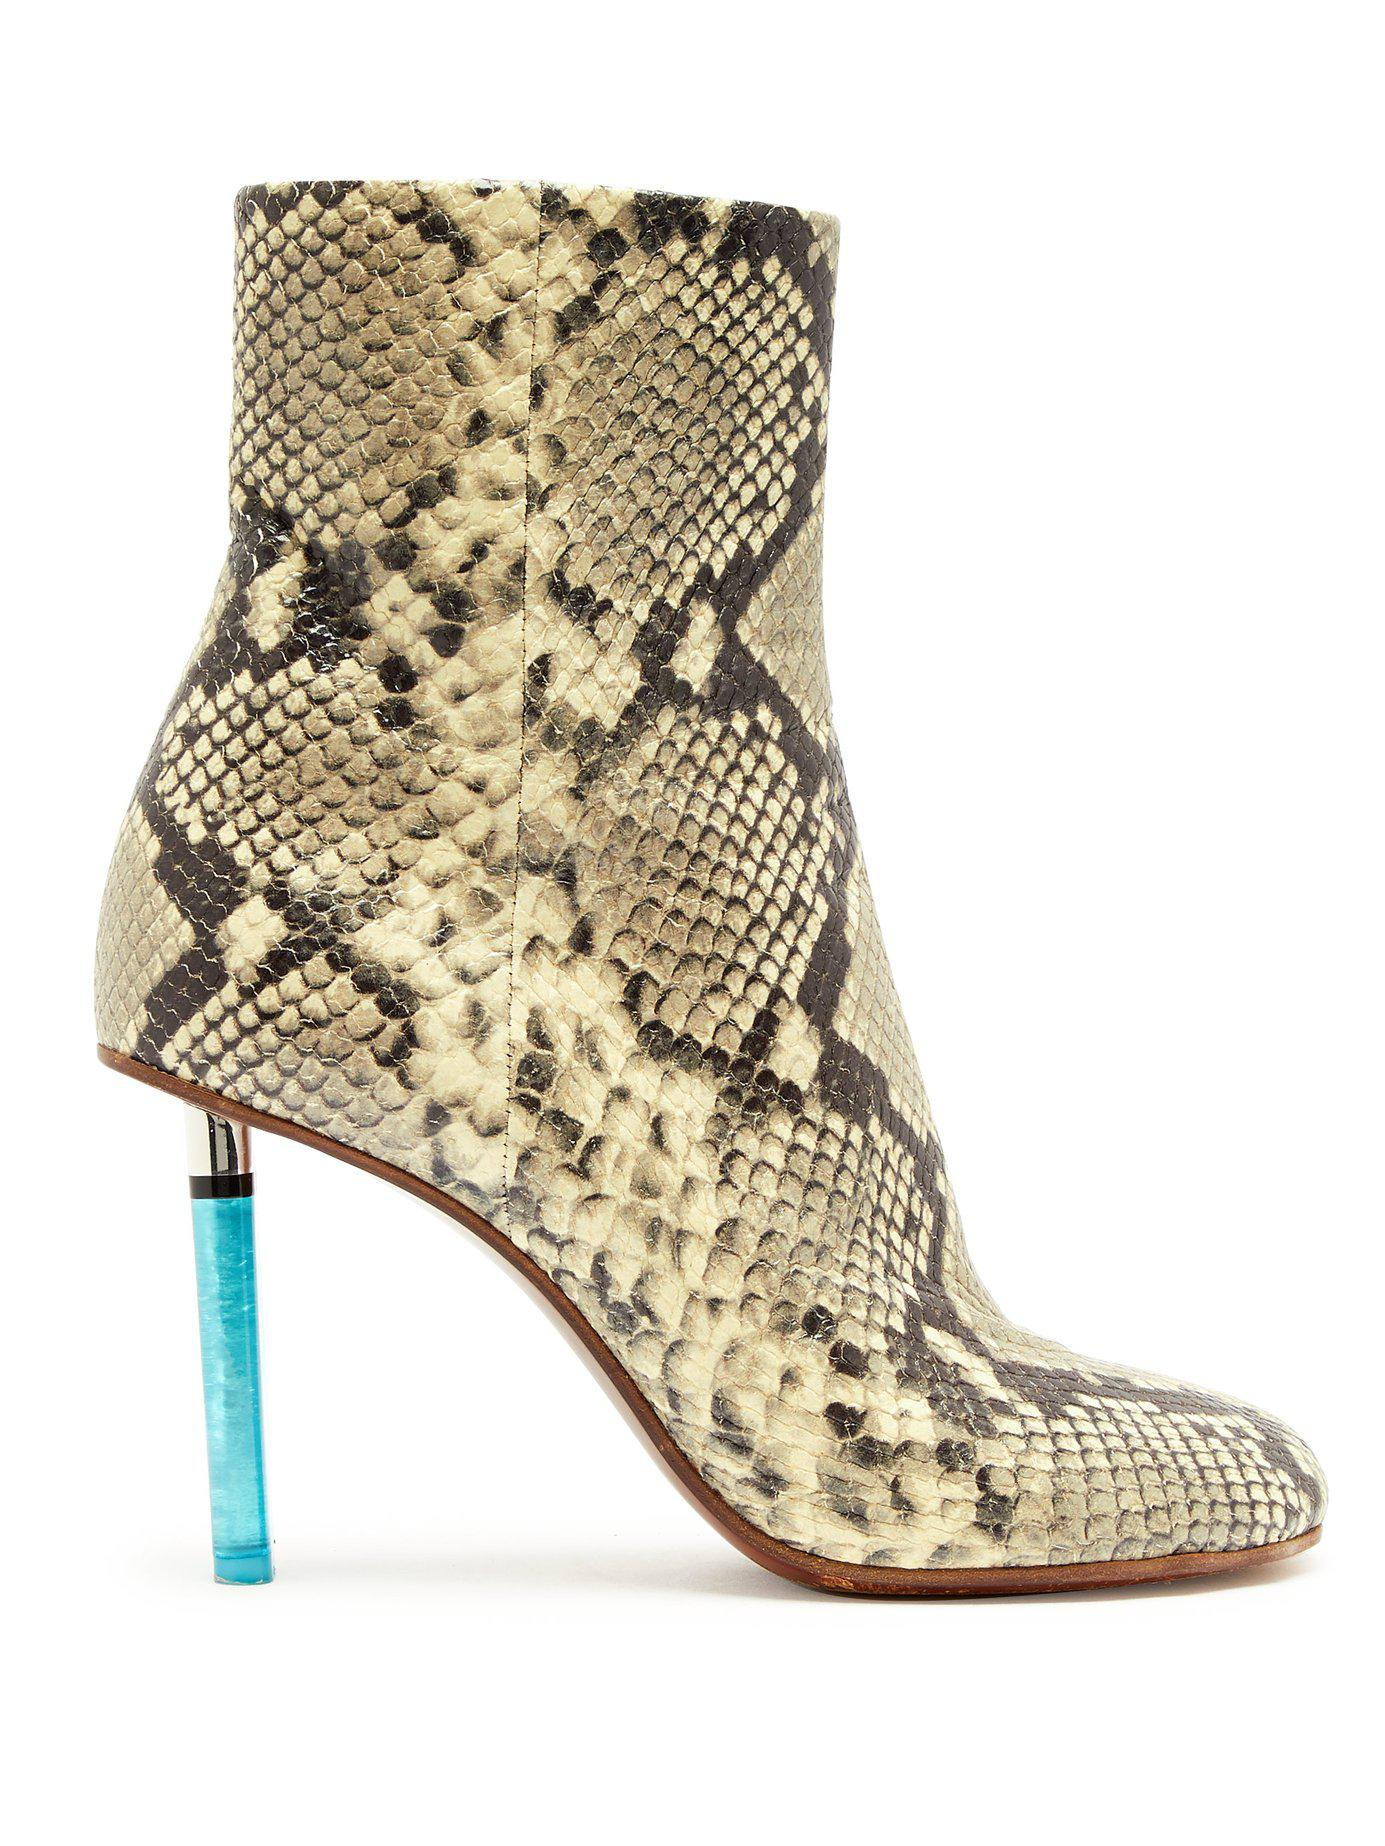 40730df78 Vetements. Women s Python Effect Lighter Heel Leather Ankle Boots